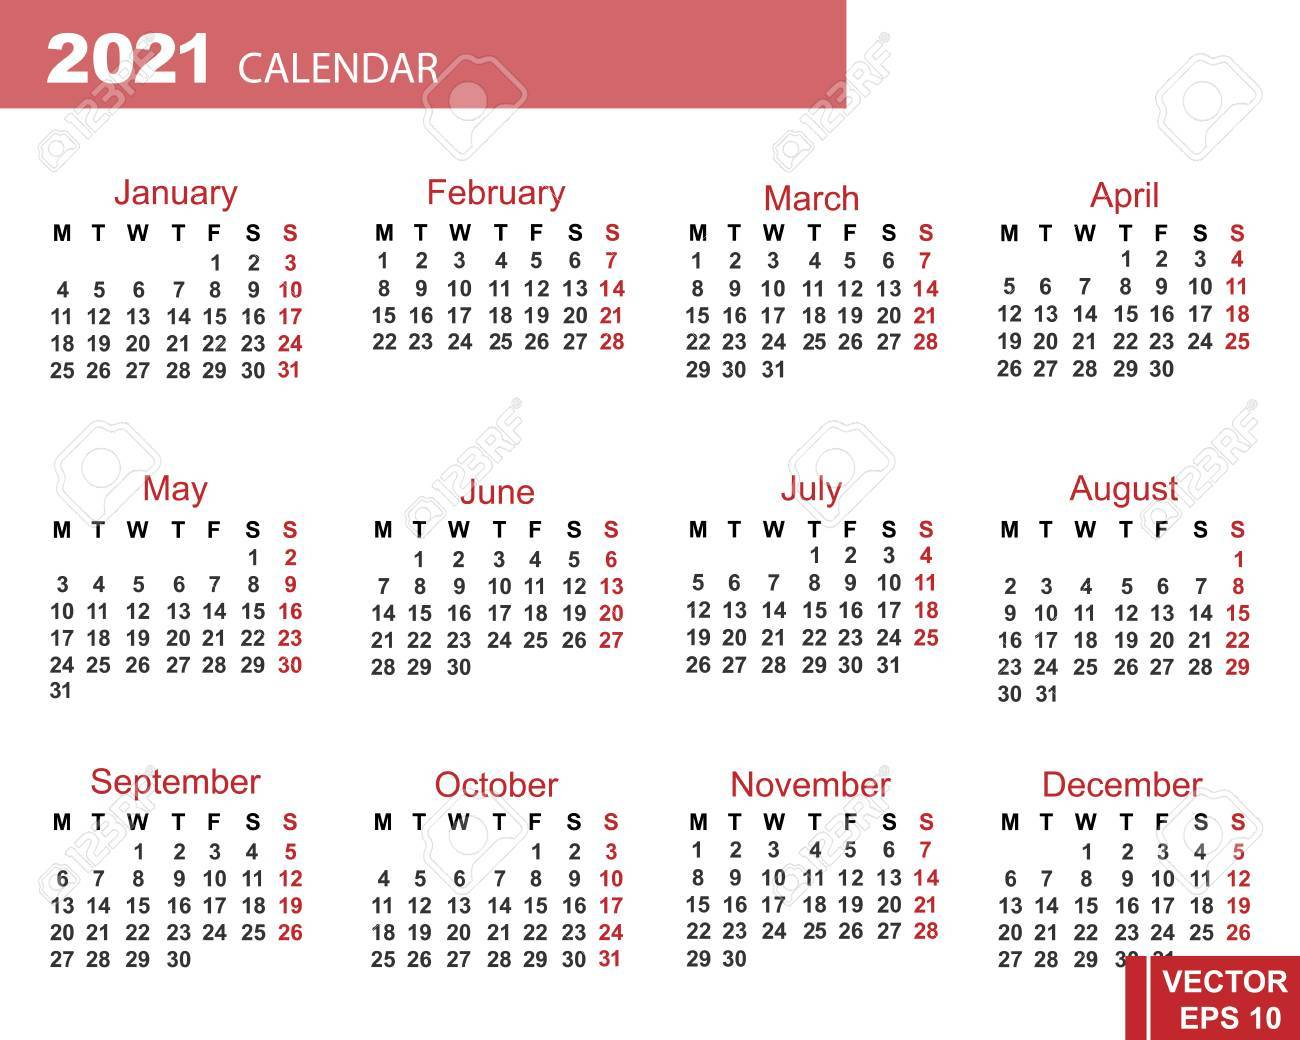 Date Calendar 2021 The Calendar. New Year 2021 Date. For Your Design. Royalty Free